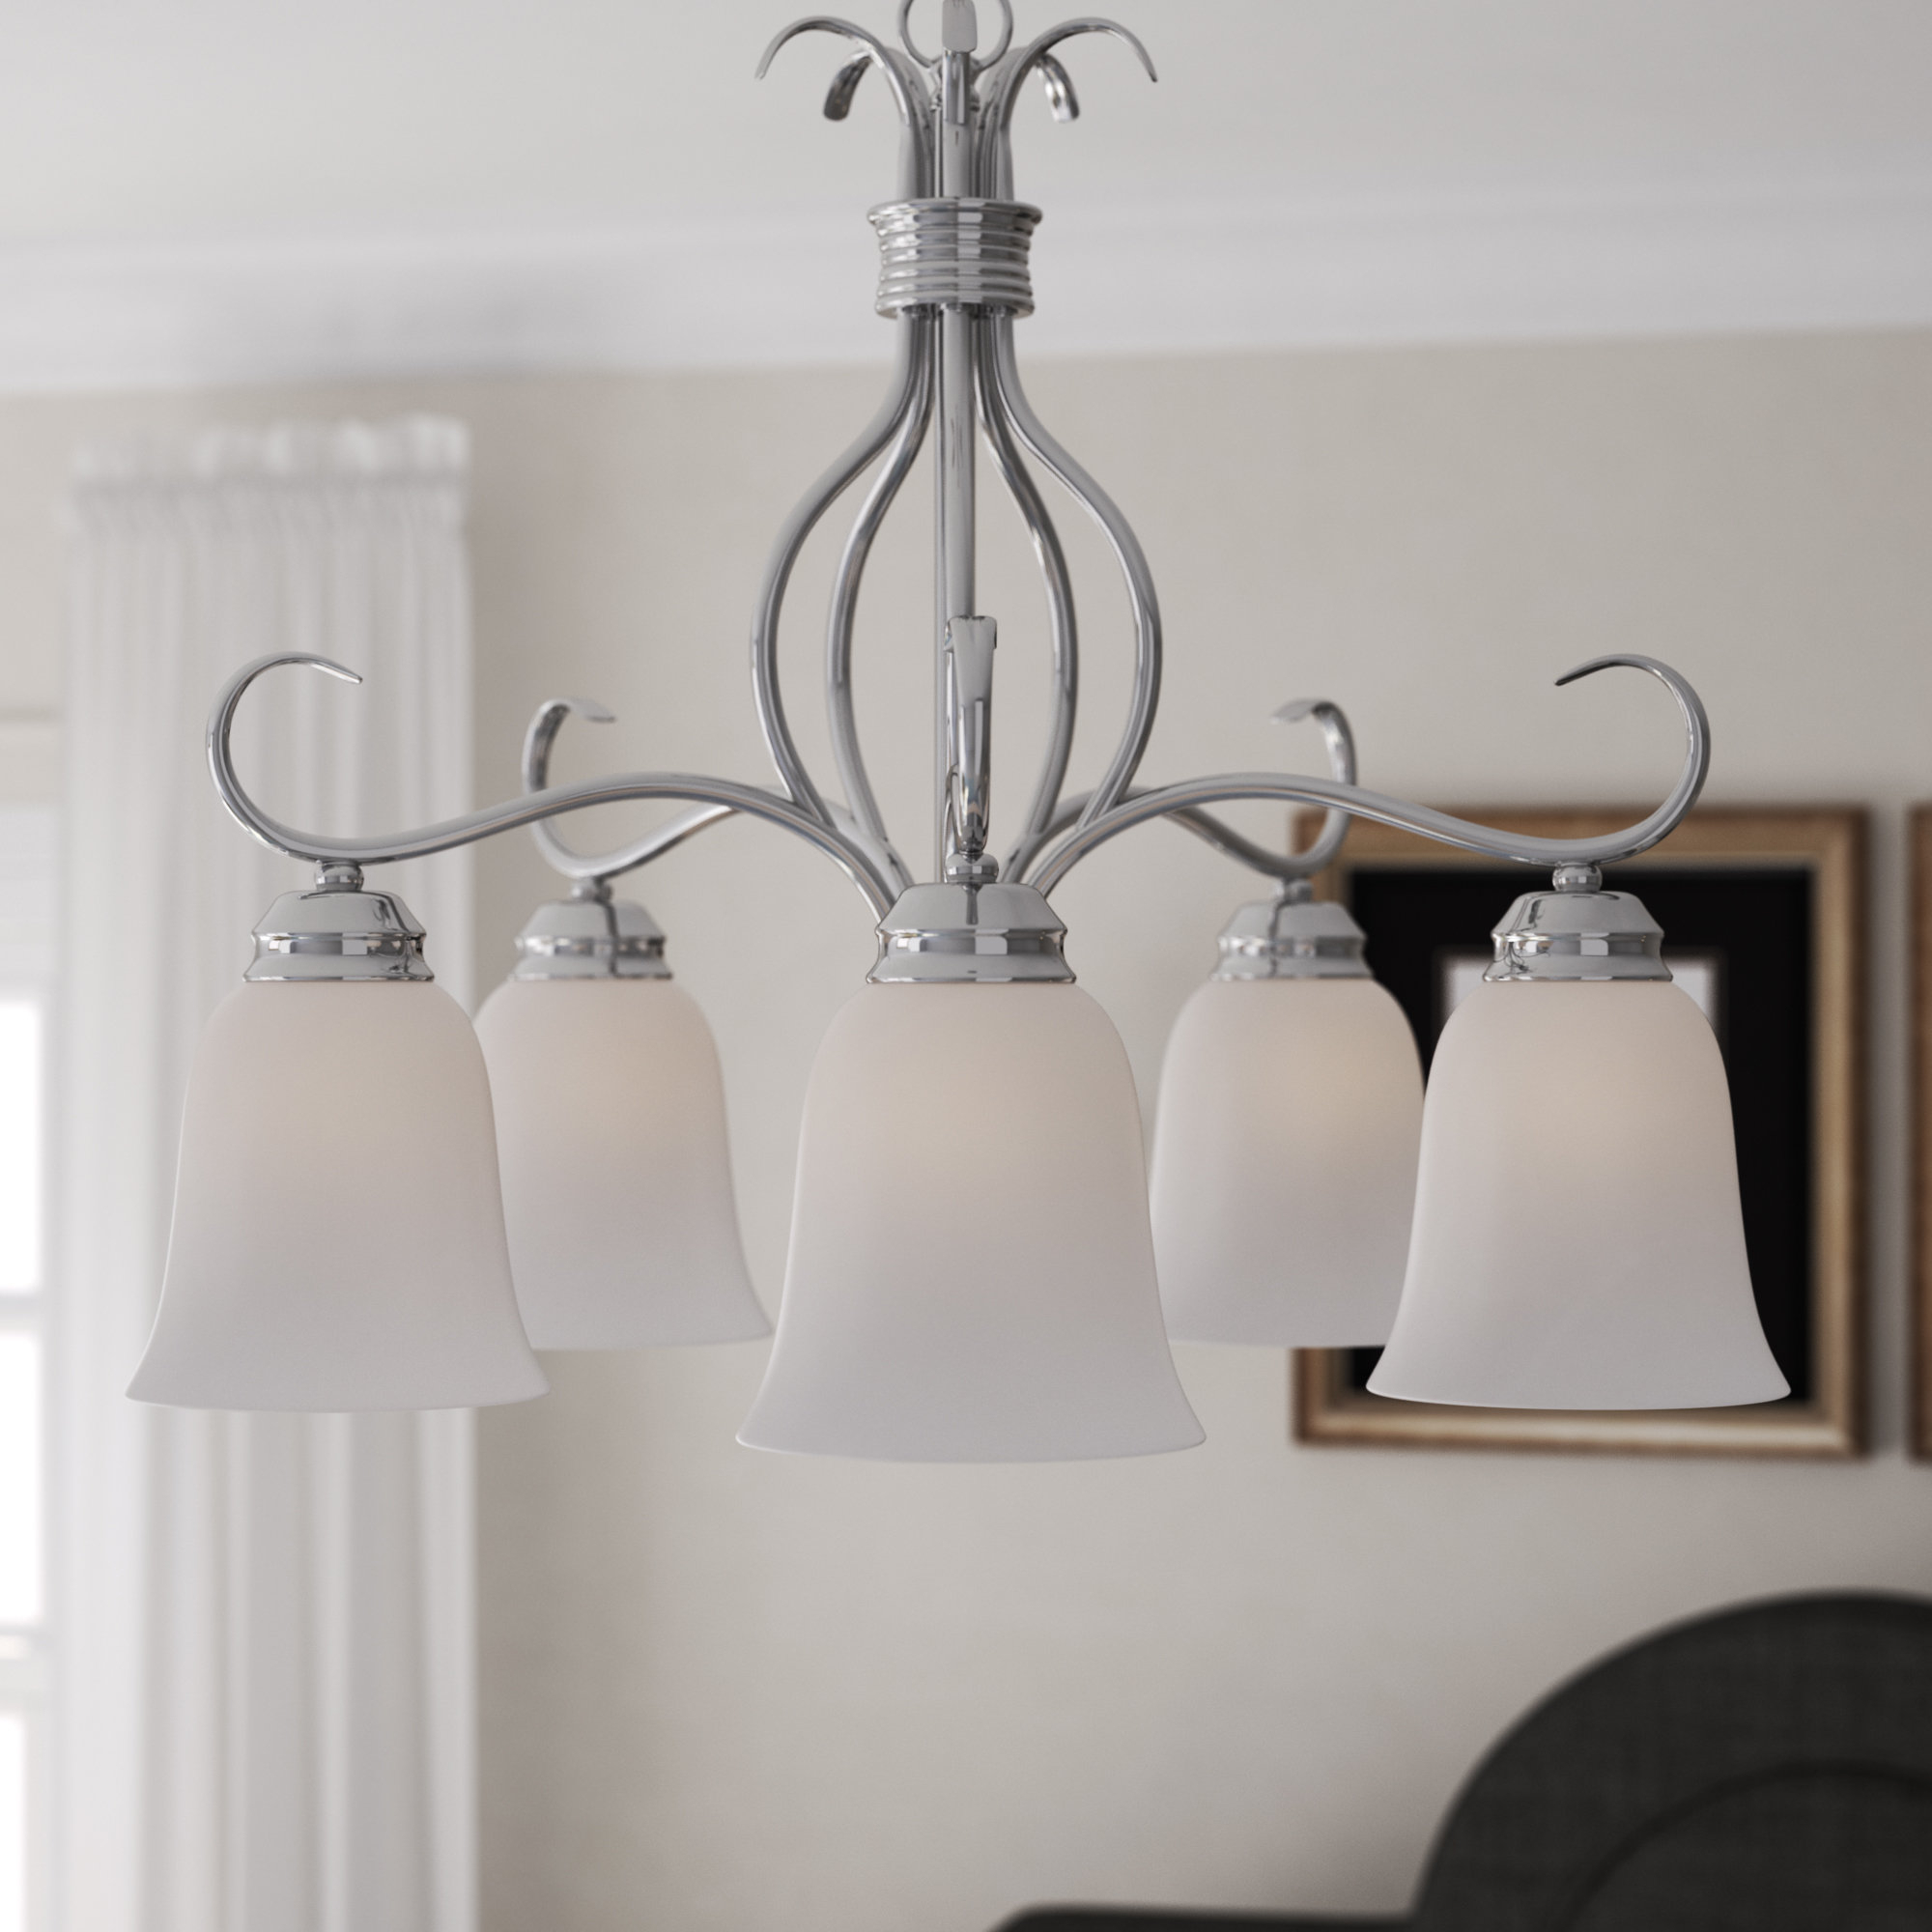 Wehr 5 Light Shaded Chandelier Within Gaines 5 Light Shaded Chandeliers (View 5 of 30)